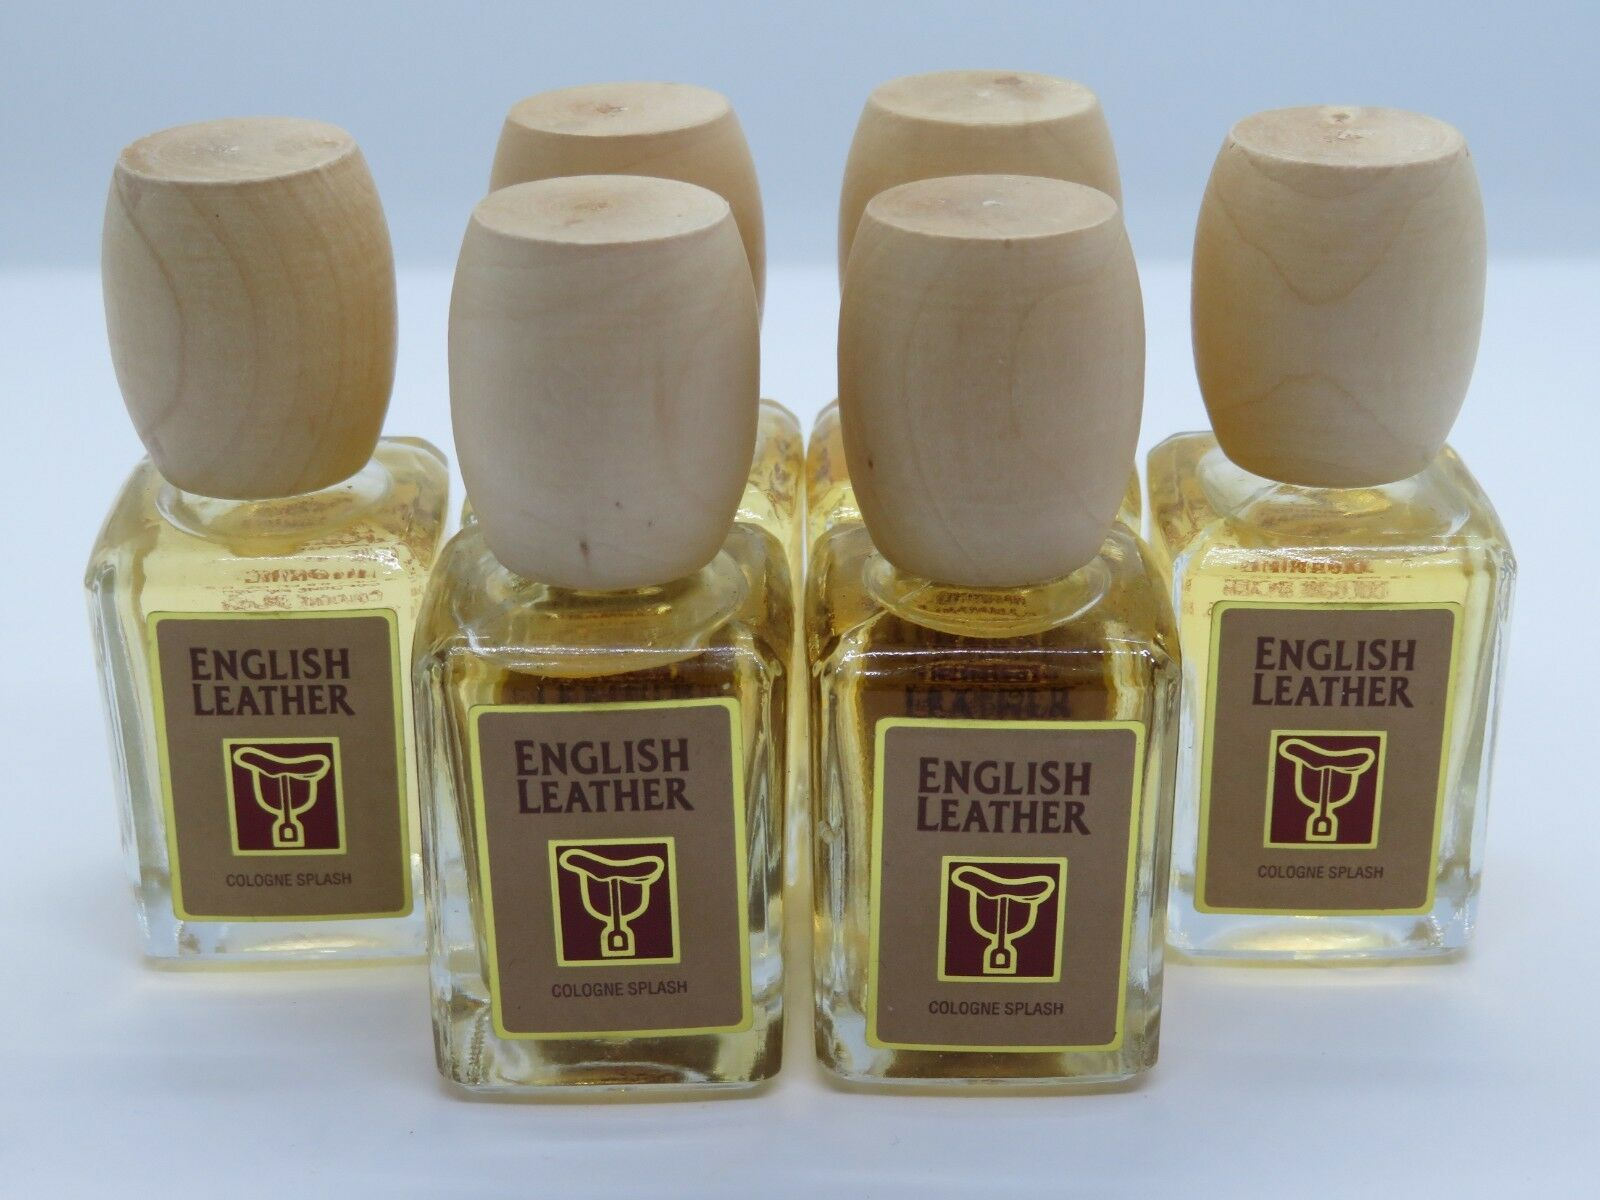 Primary image for 6 ENGLISH LEATHER COLOGNE SPLASH SPRAY FOR MEN BY DANA 0.6 FL OZ EA/3.6 TOT-NEW